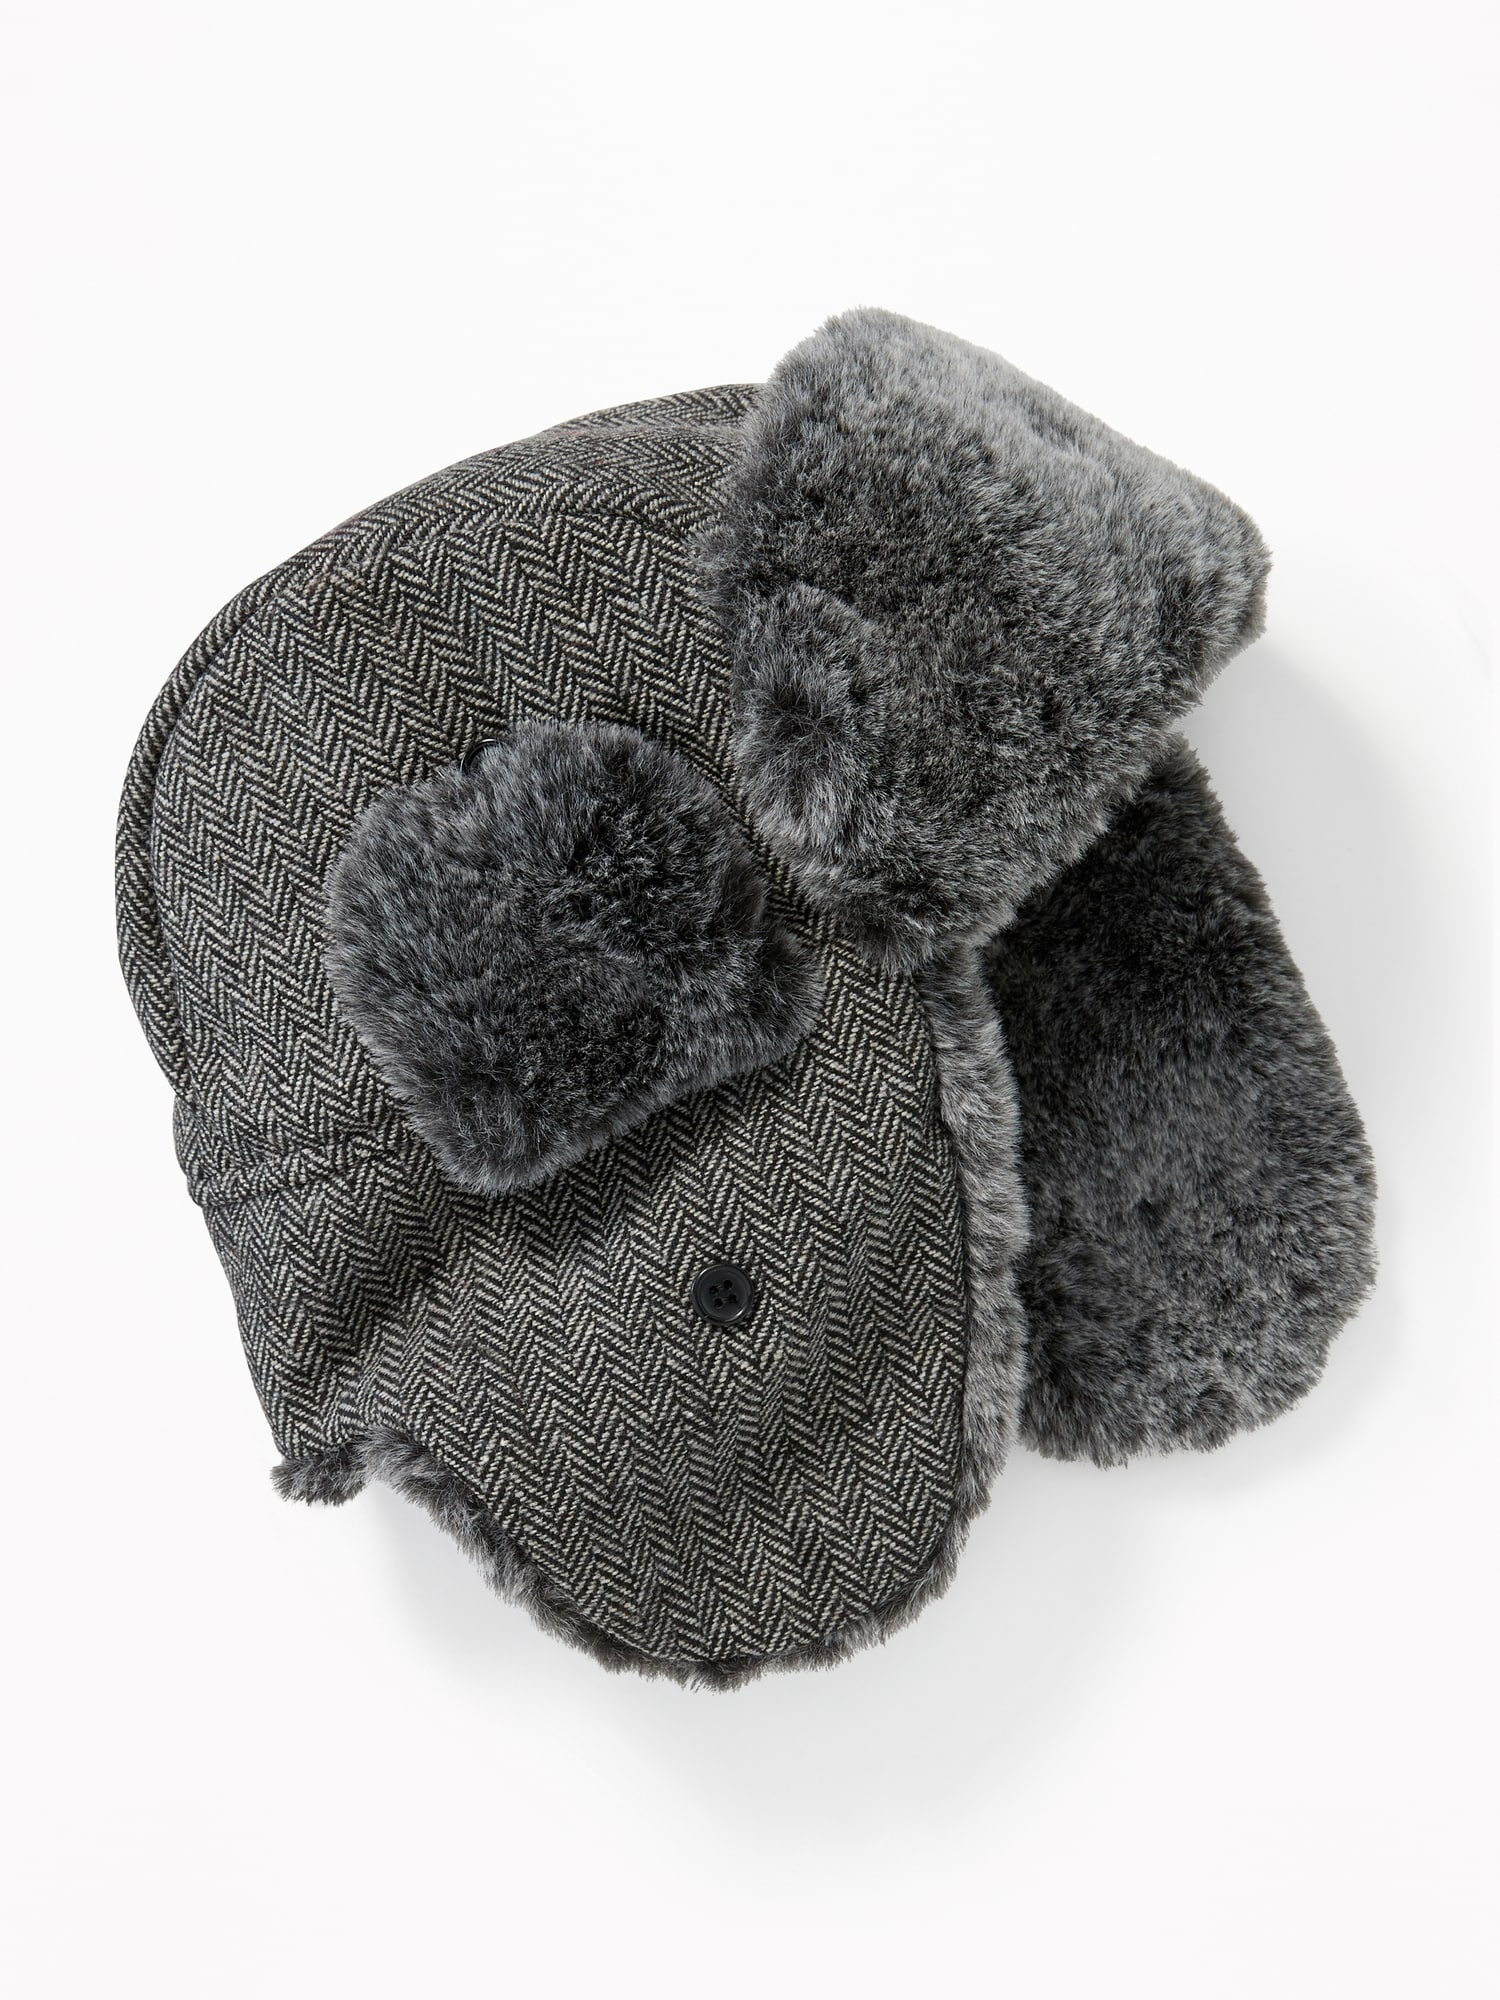 Flannel Trapper Hat for Boys  2558f8f40c0